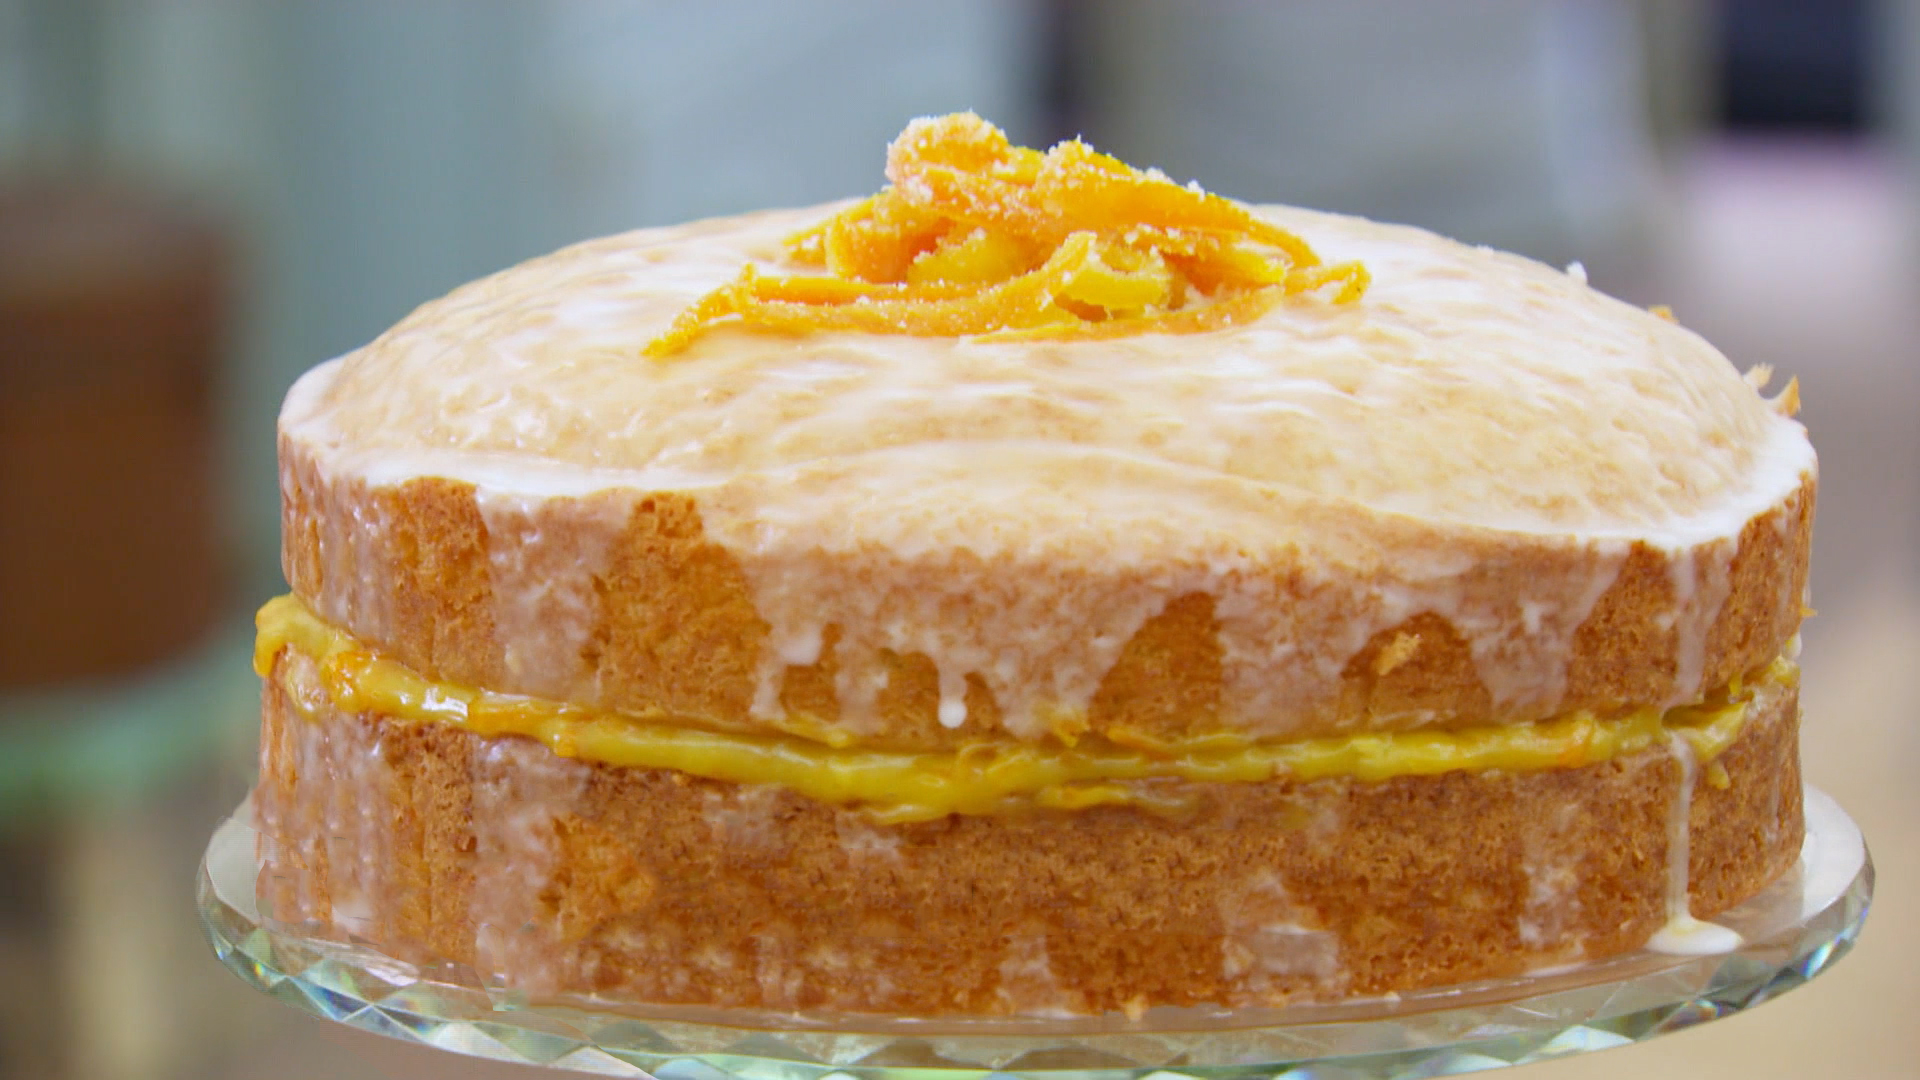 Recipes Using Lemon Drizzle Cake: St. Clements Orange And Lemon Drizzle Cake Recipe